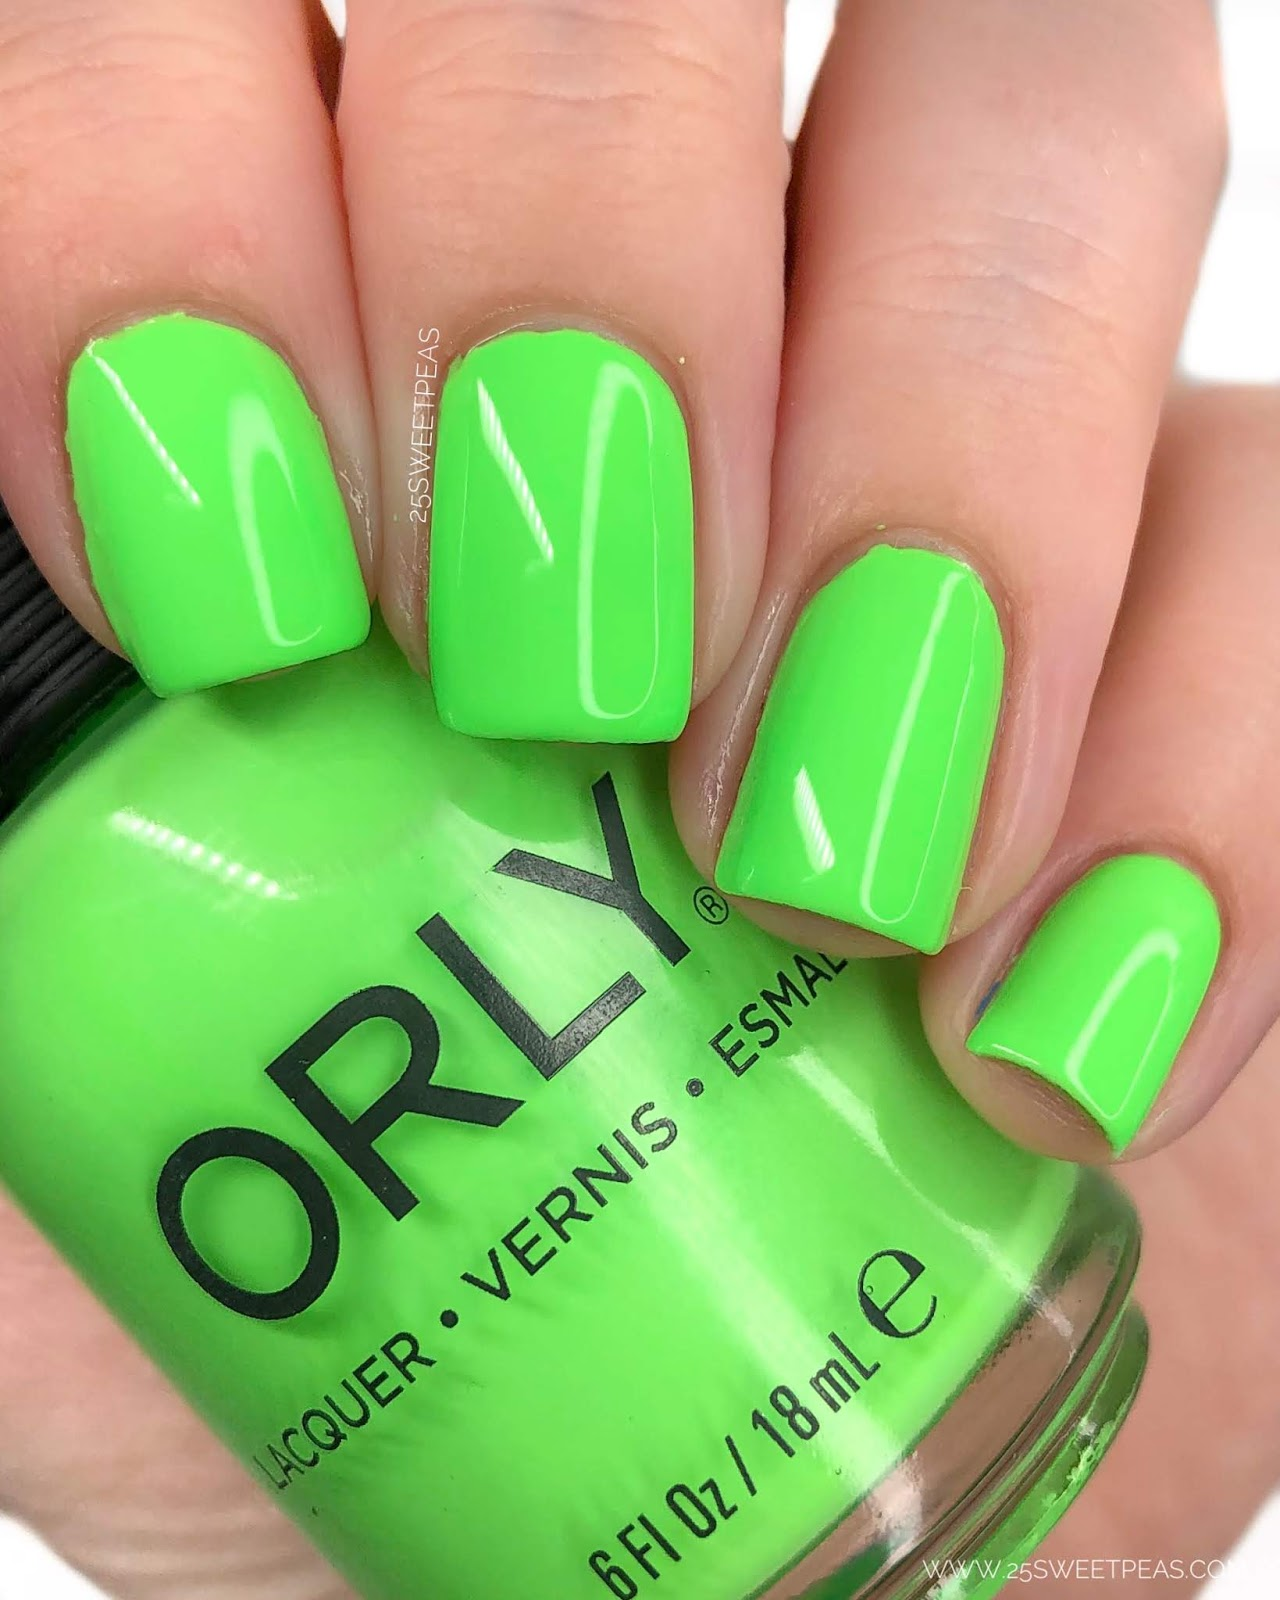 Orly So Fly 25 Sweetpeas